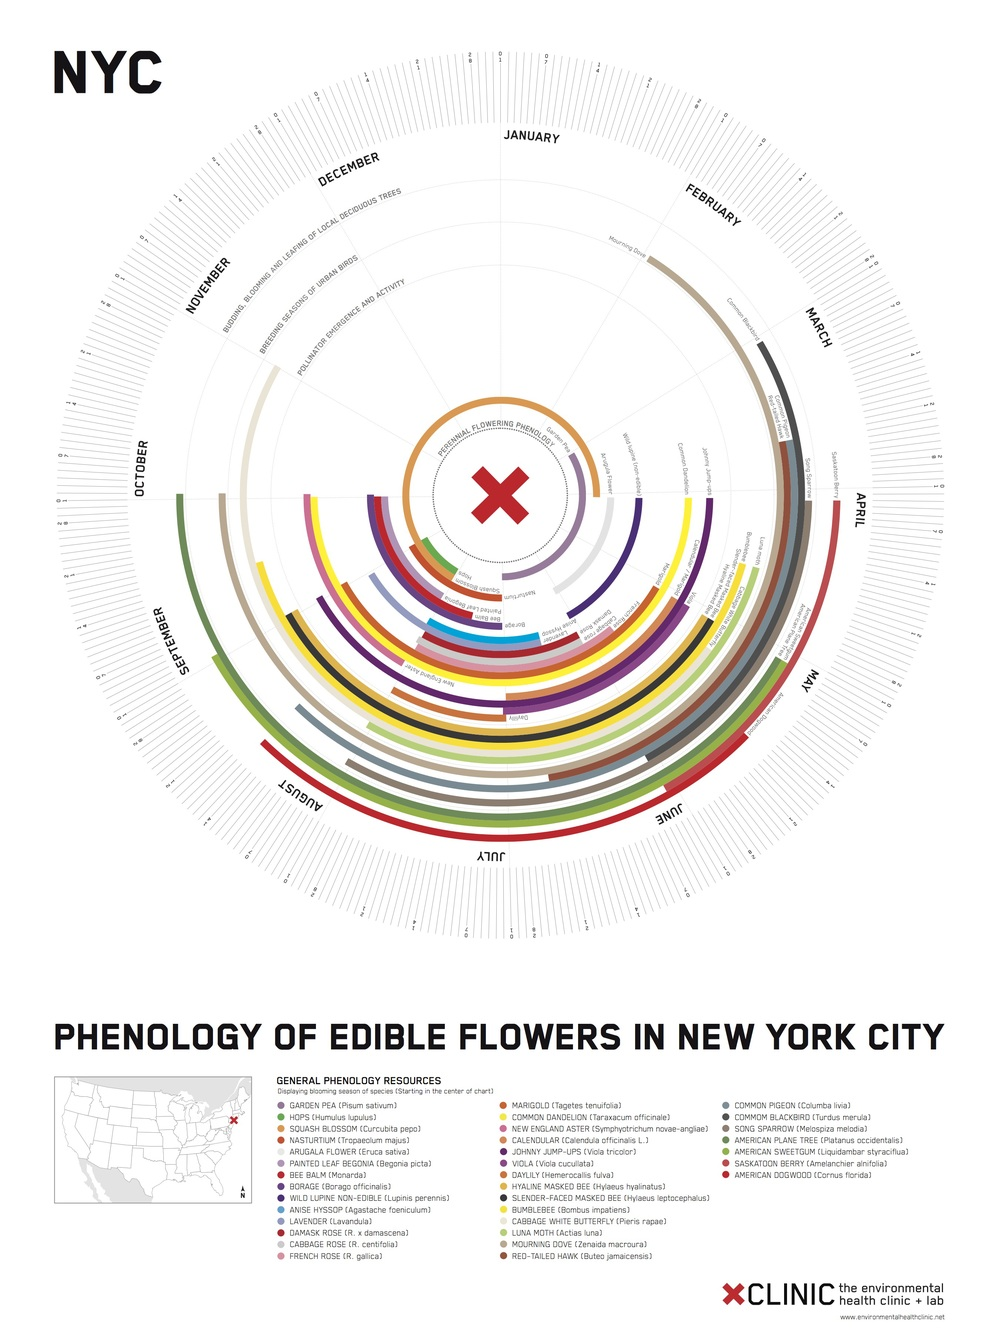 *NYC - Phen Clock - edible flowers.jpg